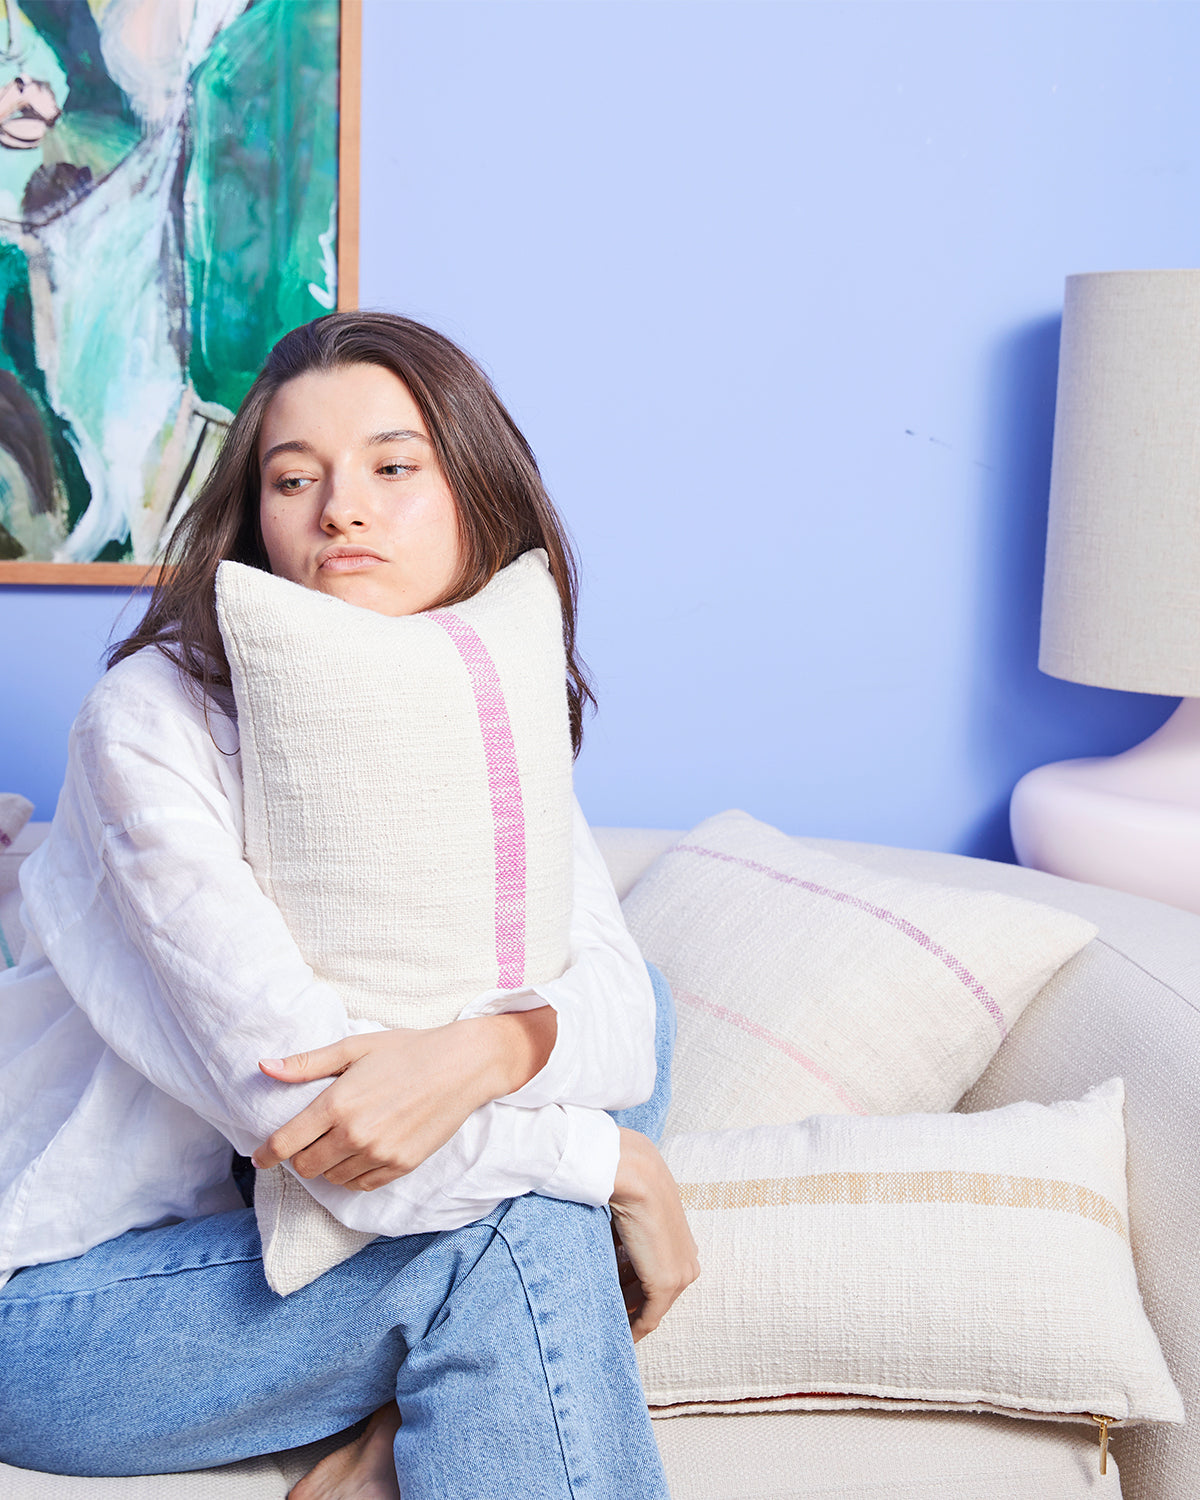 Woman sitting holding a striped pillow on a couch filled with pillows